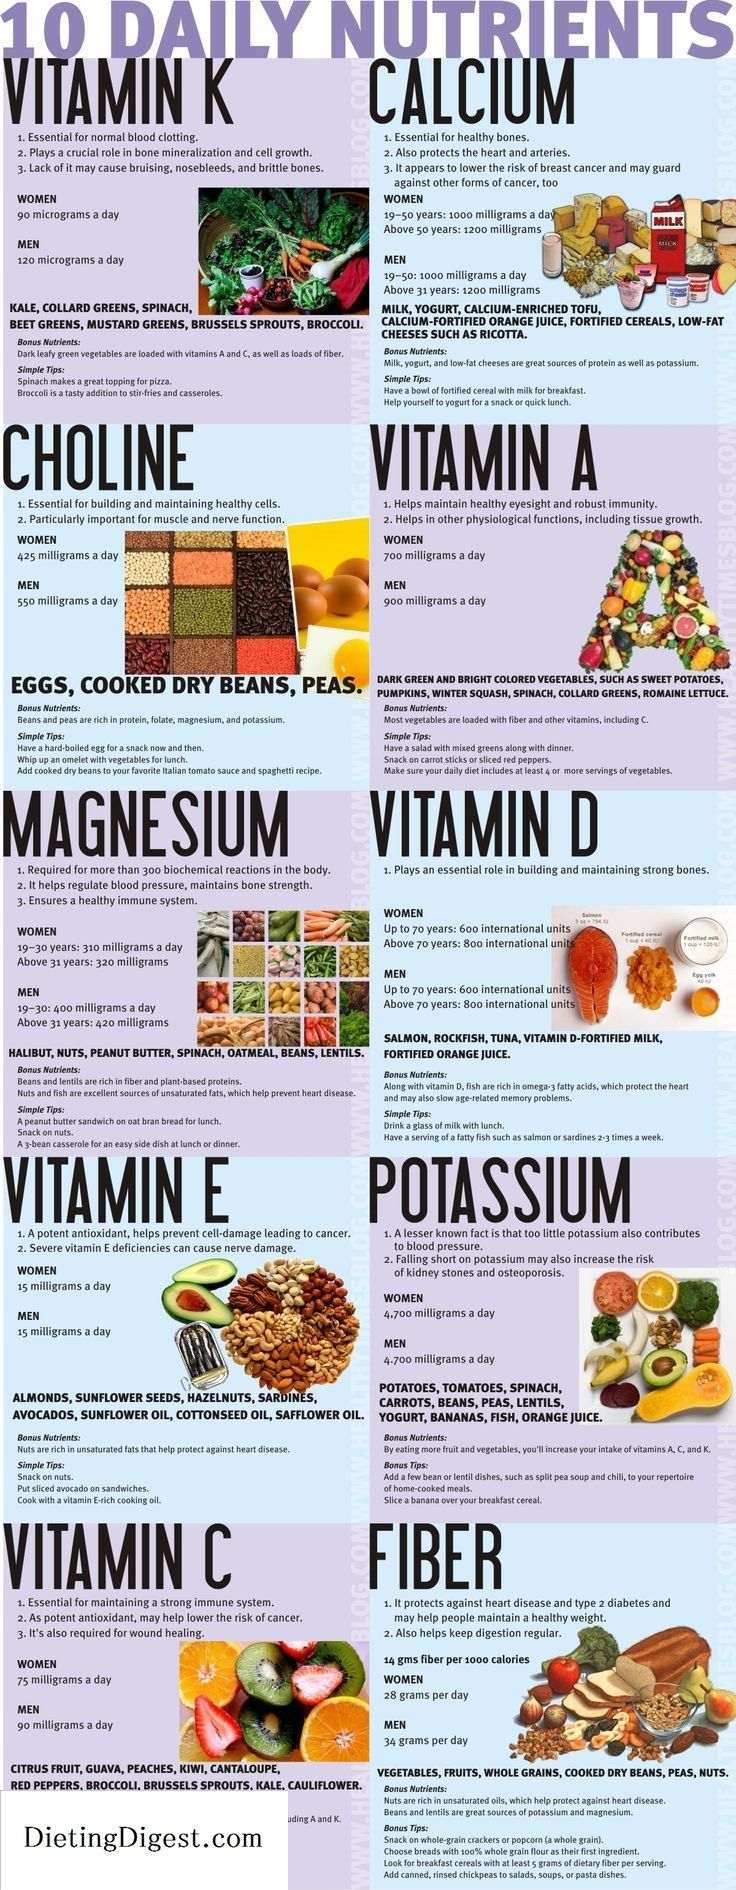 tag #fs4703 130.245. Lifetime Nutrition and Wellness 10 Nutrients In Your Diet [Infographic] - TEKS (1) The student understands the role of nutrients in the body. The student is expected to:(A) classify nutrients, their functions, and food sources and compare the nutritive value of various foods Check out Dieting Digest